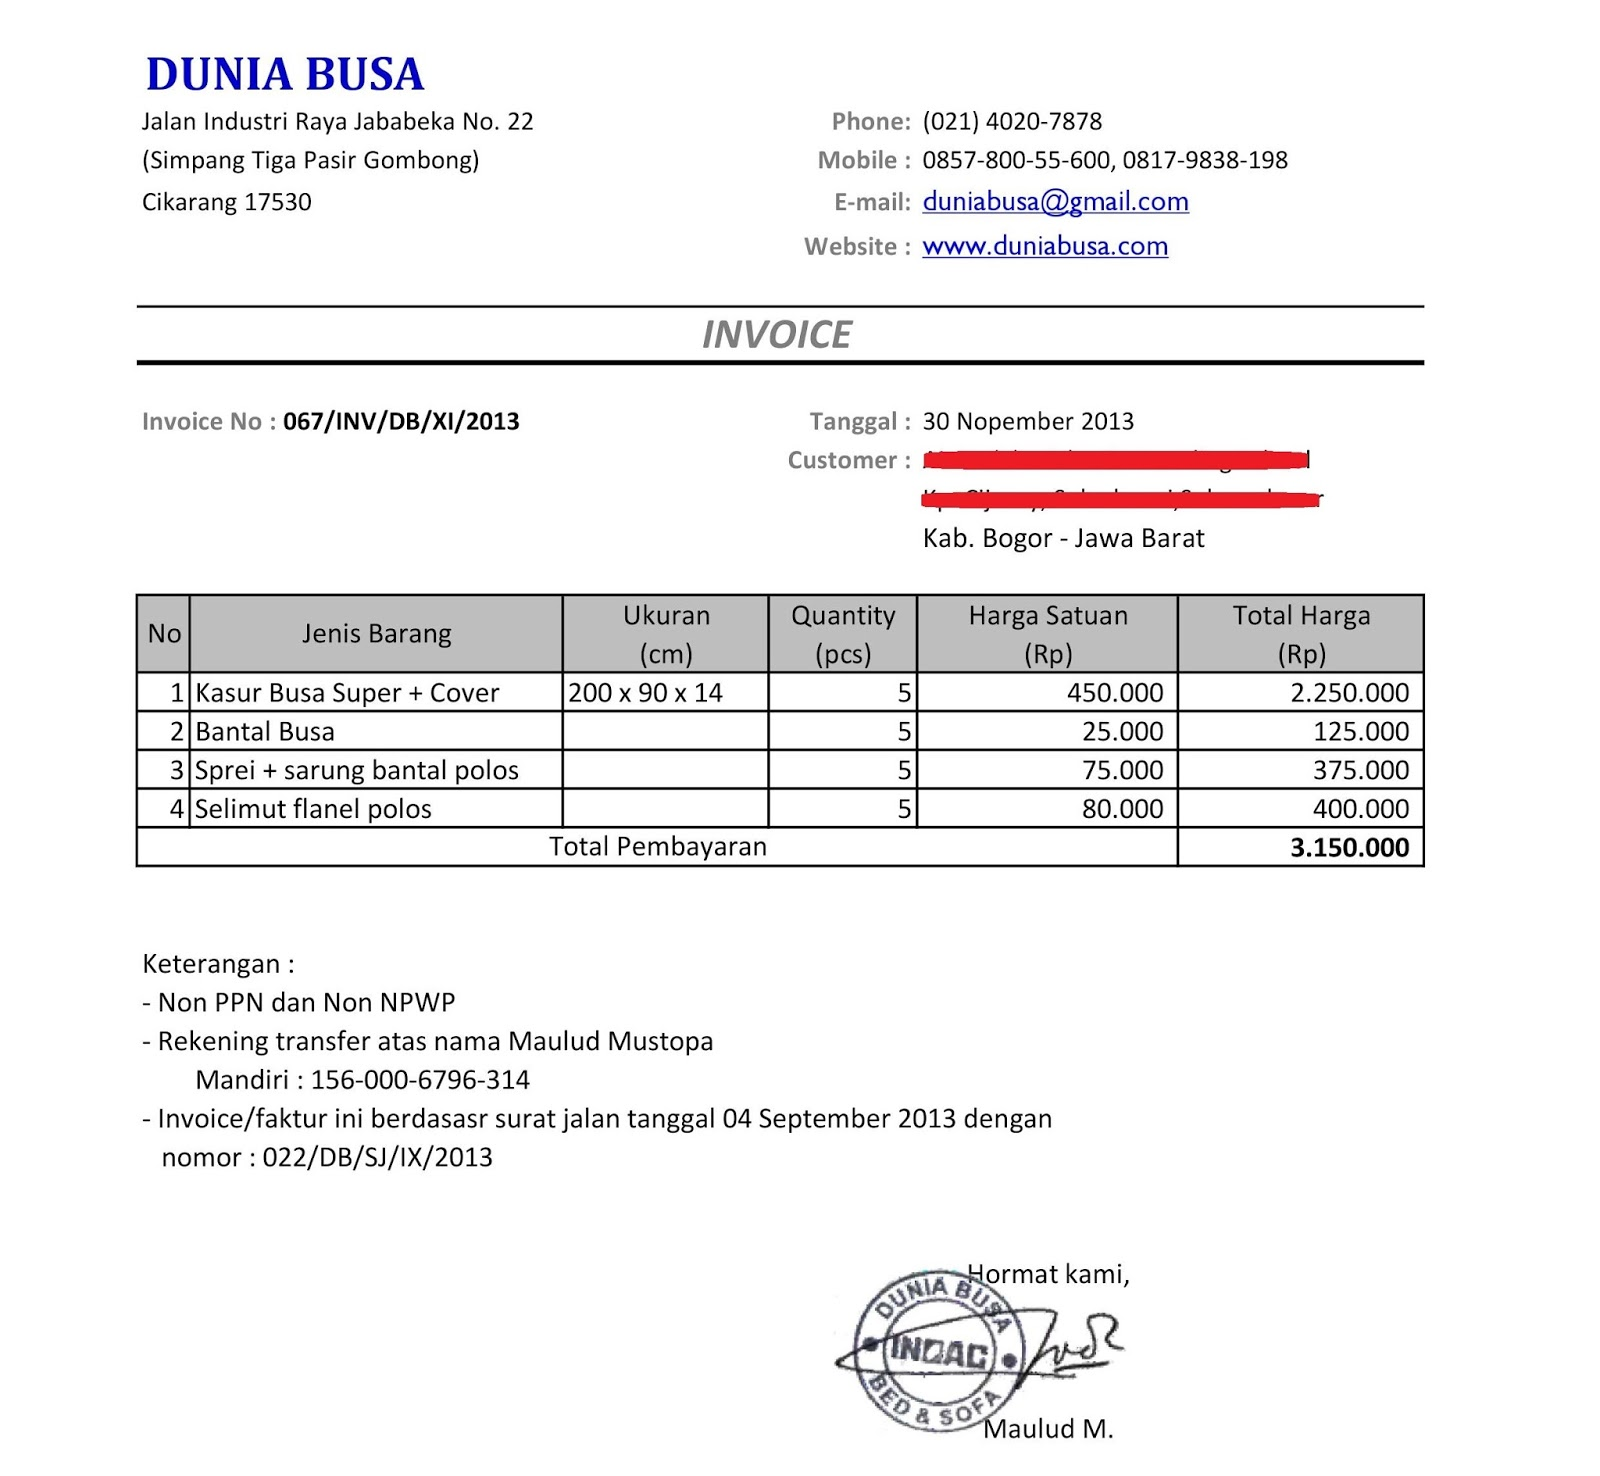 Hucareus  Unique Free Invoice Online  Create Invoice Online  Invoice Template  With Fascinating Contoh Format Invoice Atau Surat Tagihan  Brankas Arsip  Free Invoice Online With Divine Microsoft Free Invoice Template Also What Does Invoice Price Mean For Cars In Addition How To Generate An Invoice And Word Document Invoice As Well As Invoices Forms Additionally Best Invoicing Software For Mac From Sklepco With Hucareus  Fascinating Free Invoice Online  Create Invoice Online  Invoice Template  With Divine Contoh Format Invoice Atau Surat Tagihan  Brankas Arsip  Free Invoice Online And Unique Microsoft Free Invoice Template Also What Does Invoice Price Mean For Cars In Addition How To Generate An Invoice From Sklepco